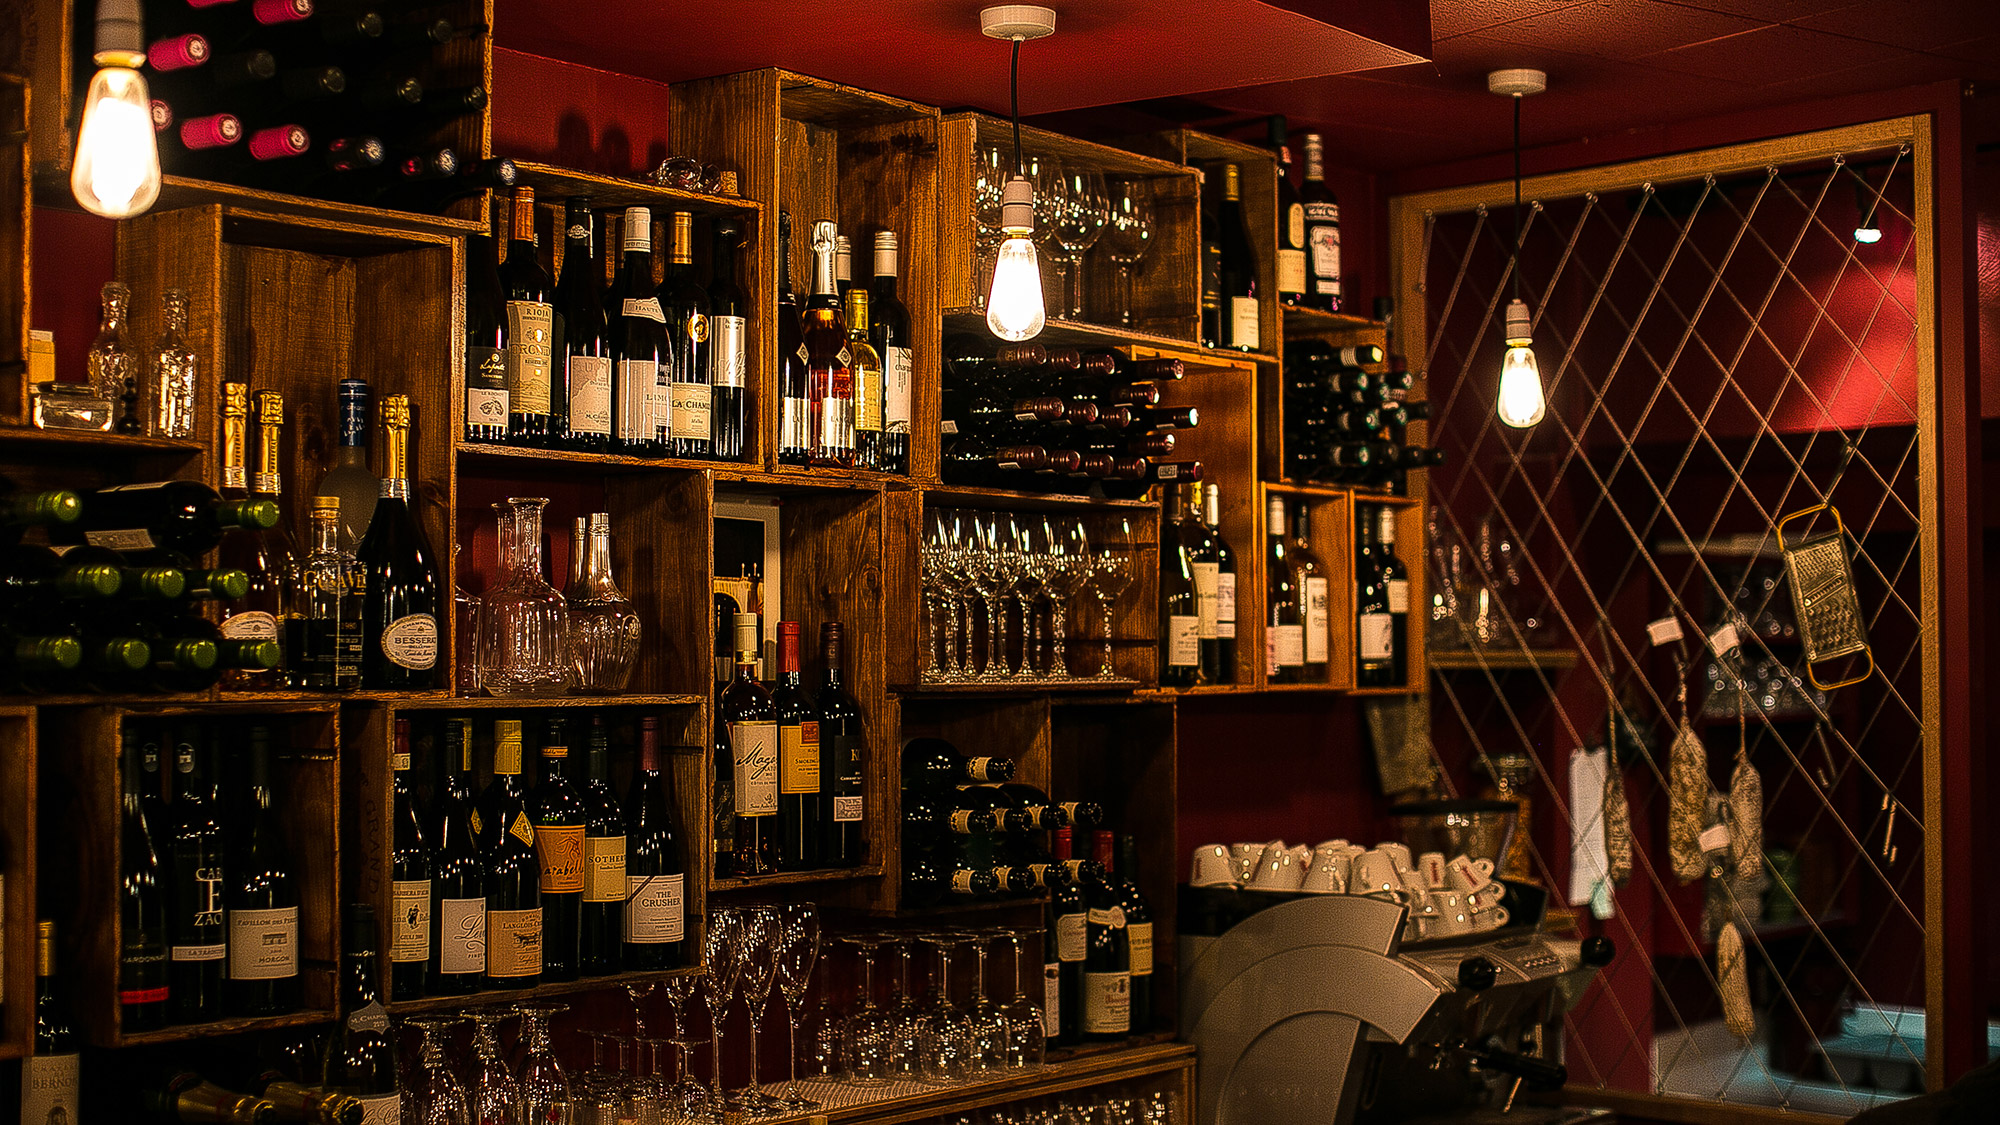 Shelving units made from wine crates, Cellar Magneval wine bar